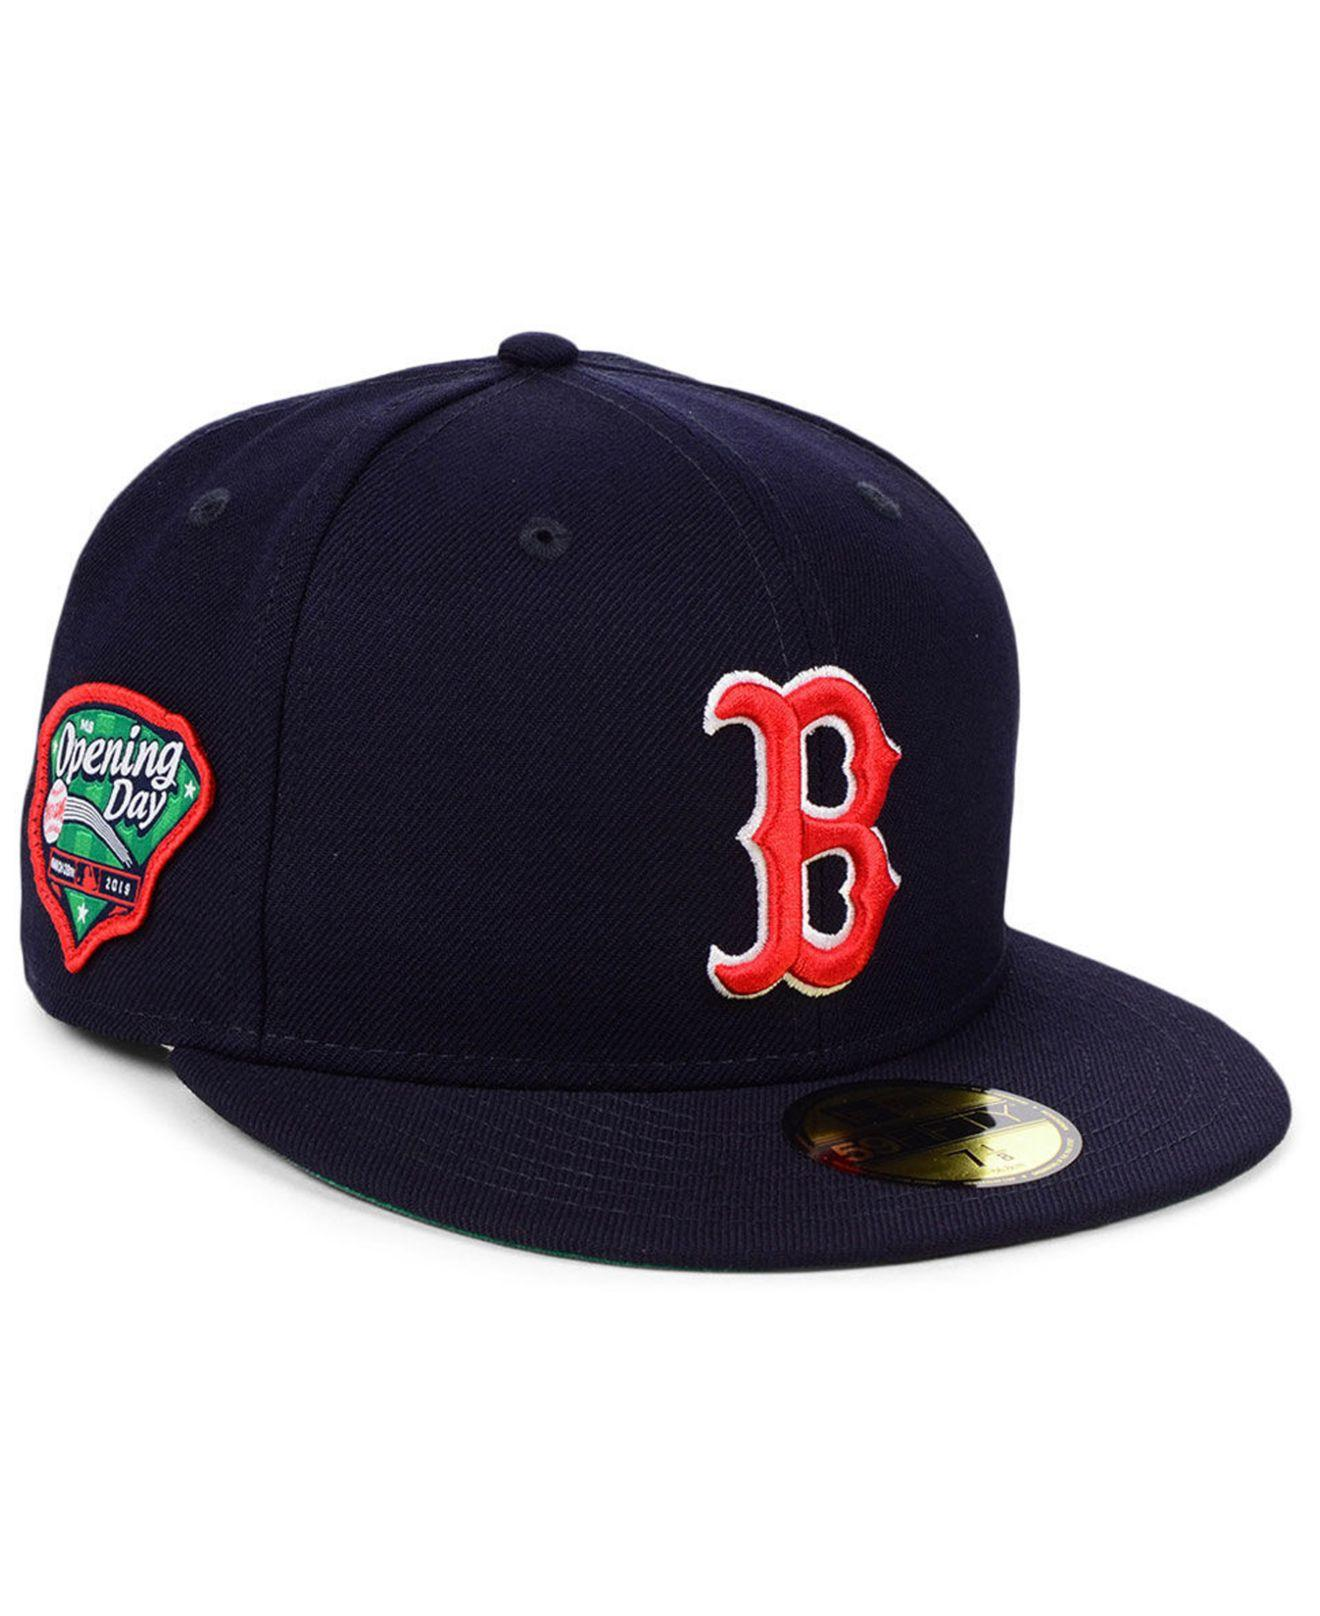 the best attitude 005e2 0e1ee KTZ Boston Red Sox Opening Day 59fifty-fitted-fitted Cap in Blue for Men -  Lyst